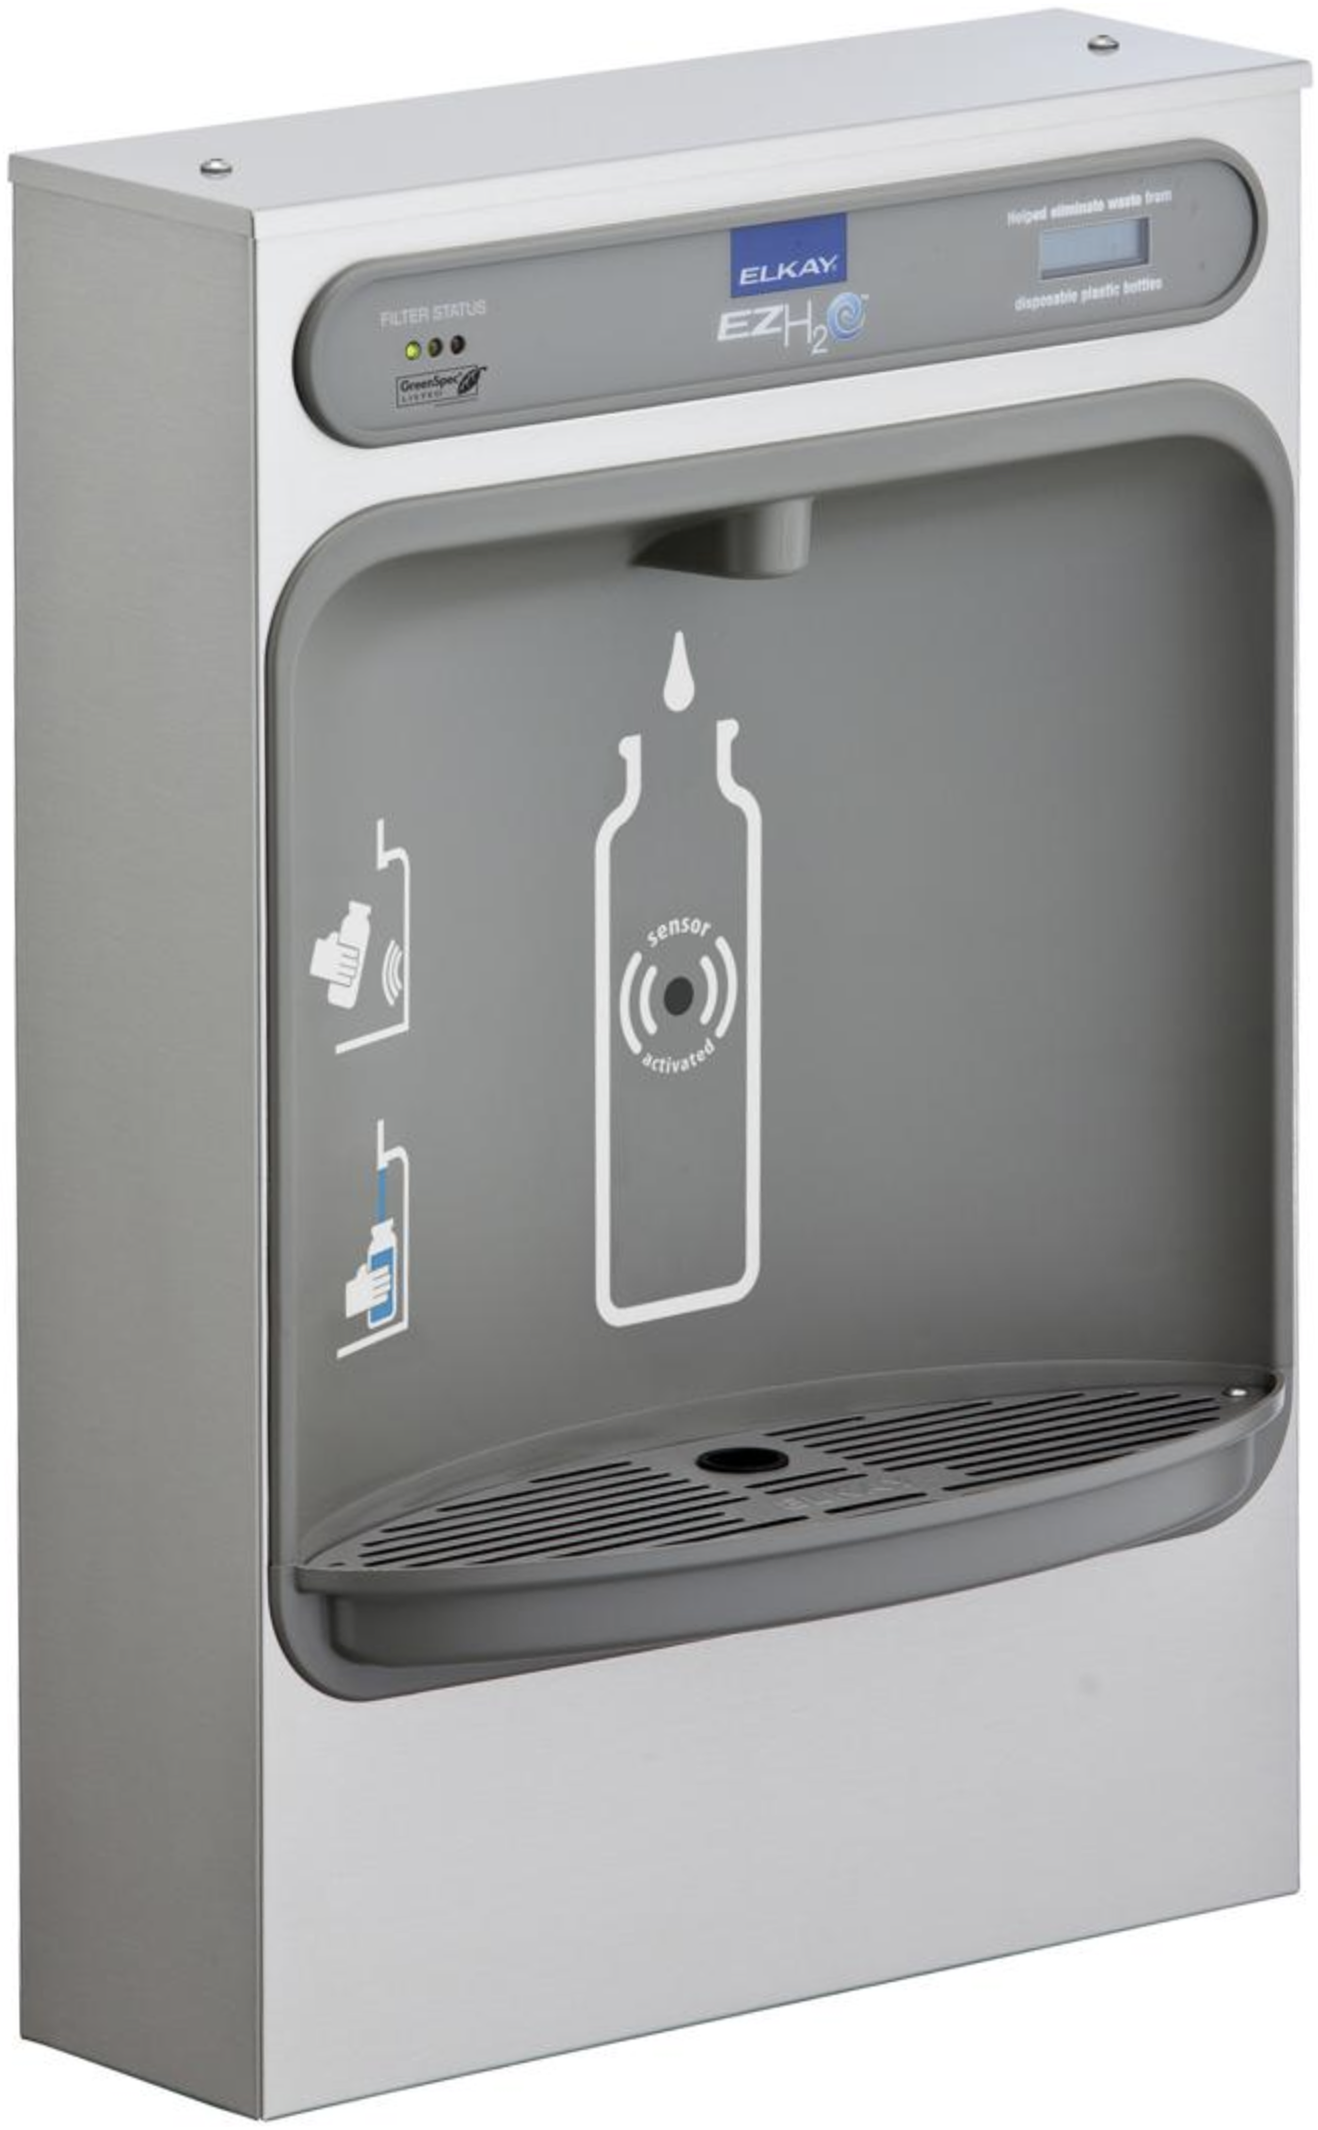 Elkay EZH2O water bottle refill station.png